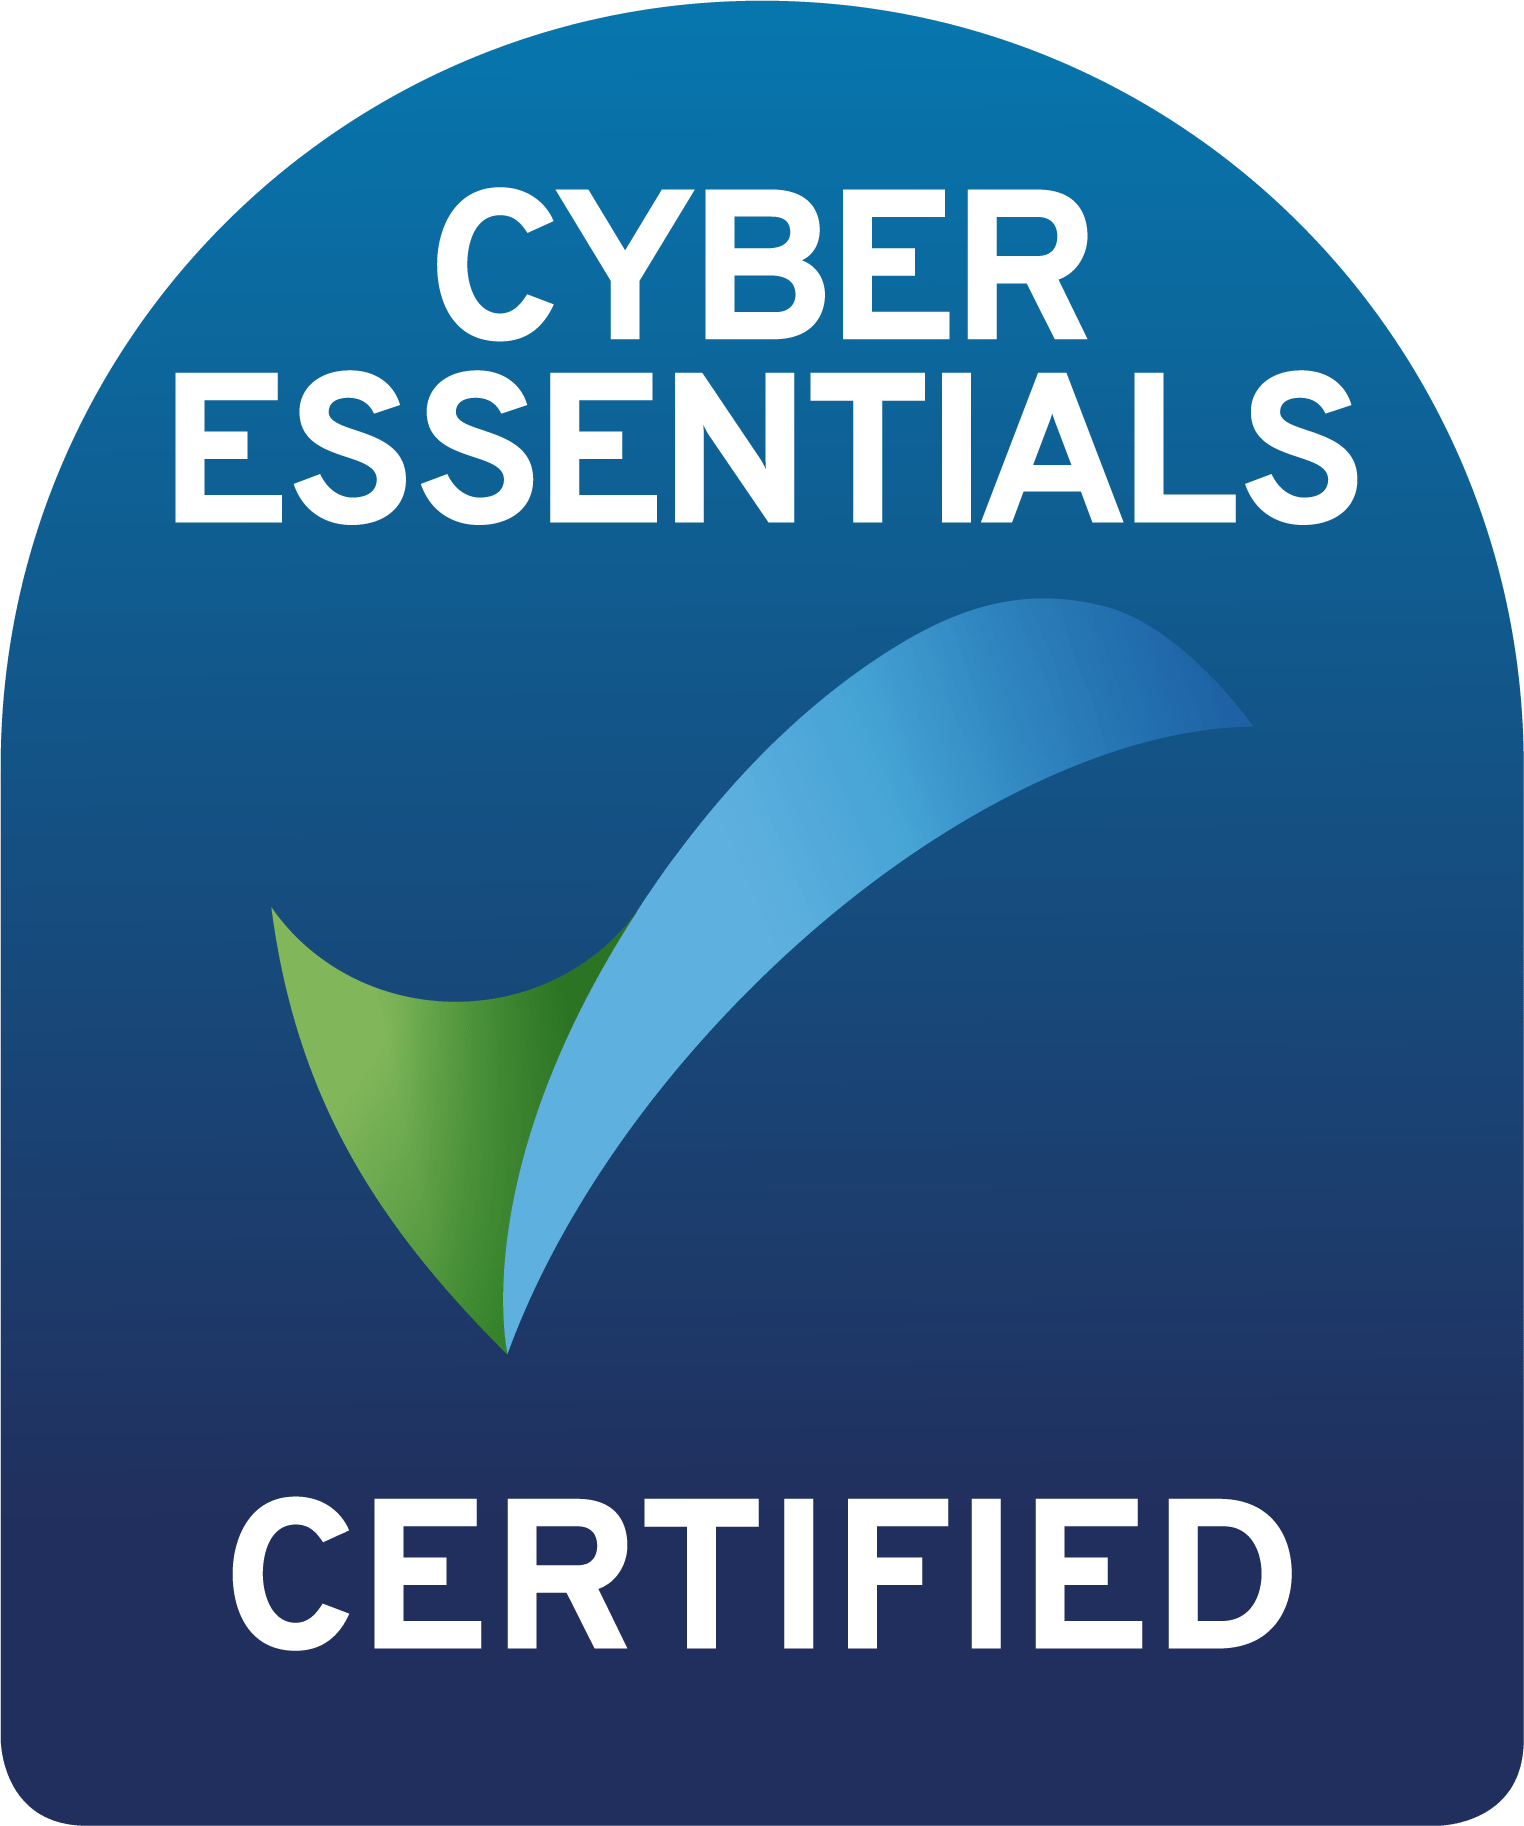 Cyberessentials Certification